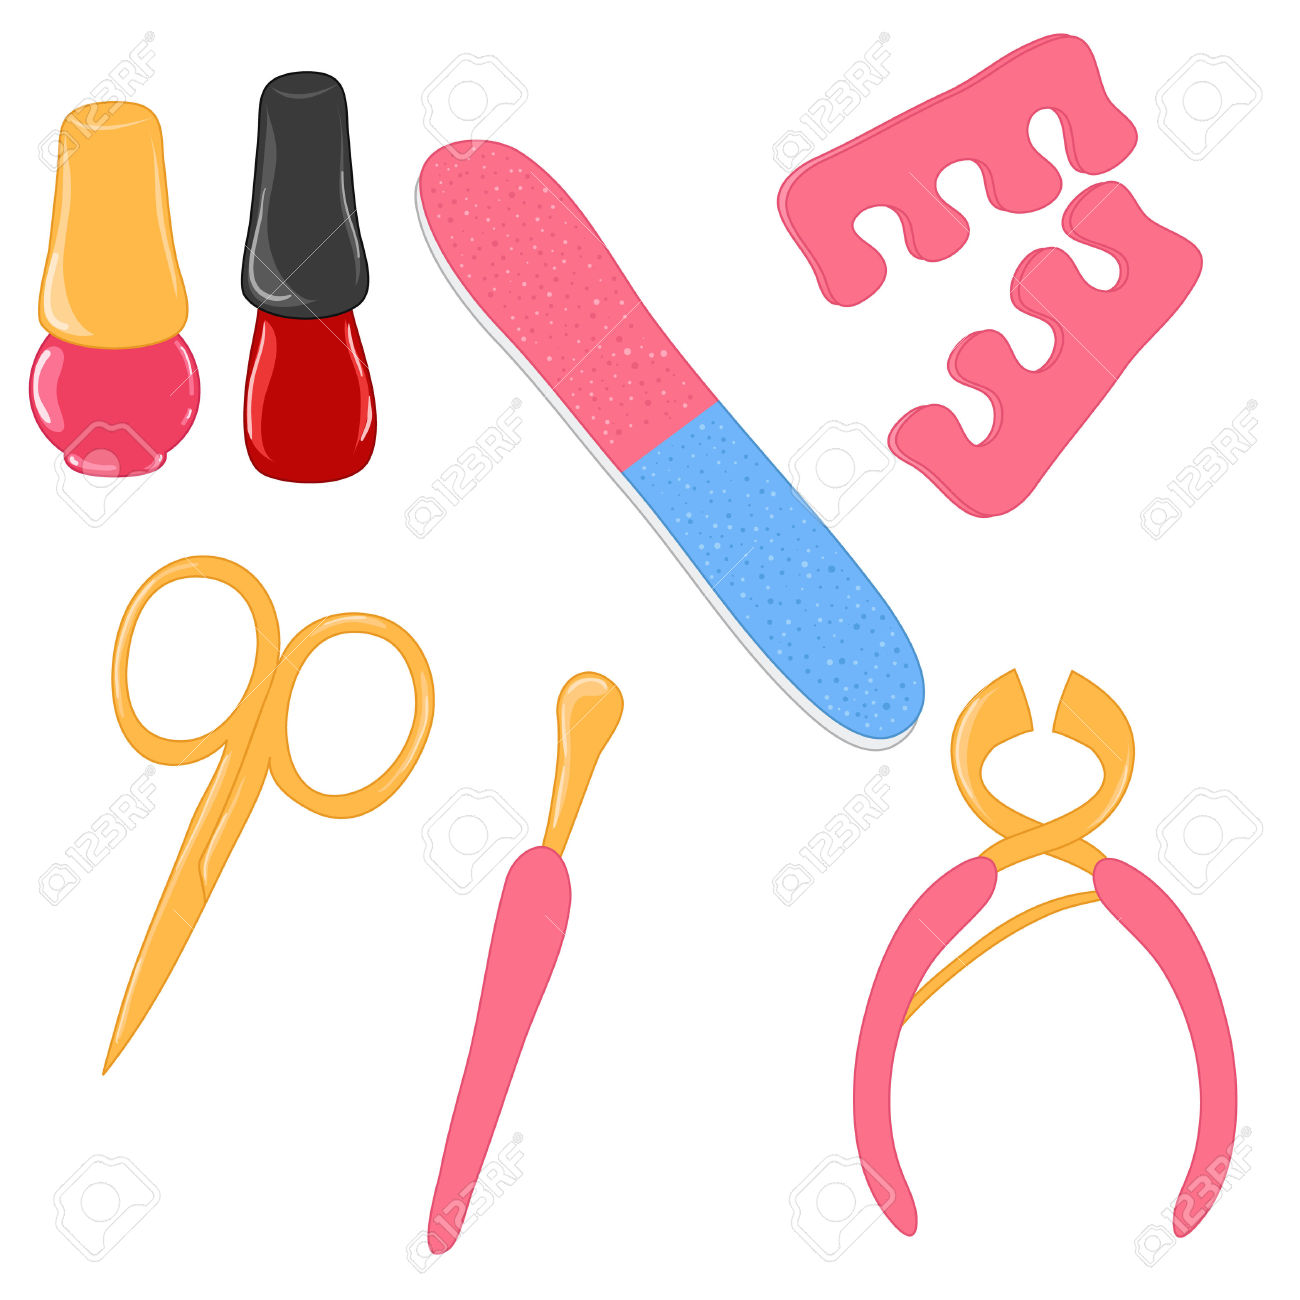 Various Sewing Tools Vector Clip Art Download Free Clipart